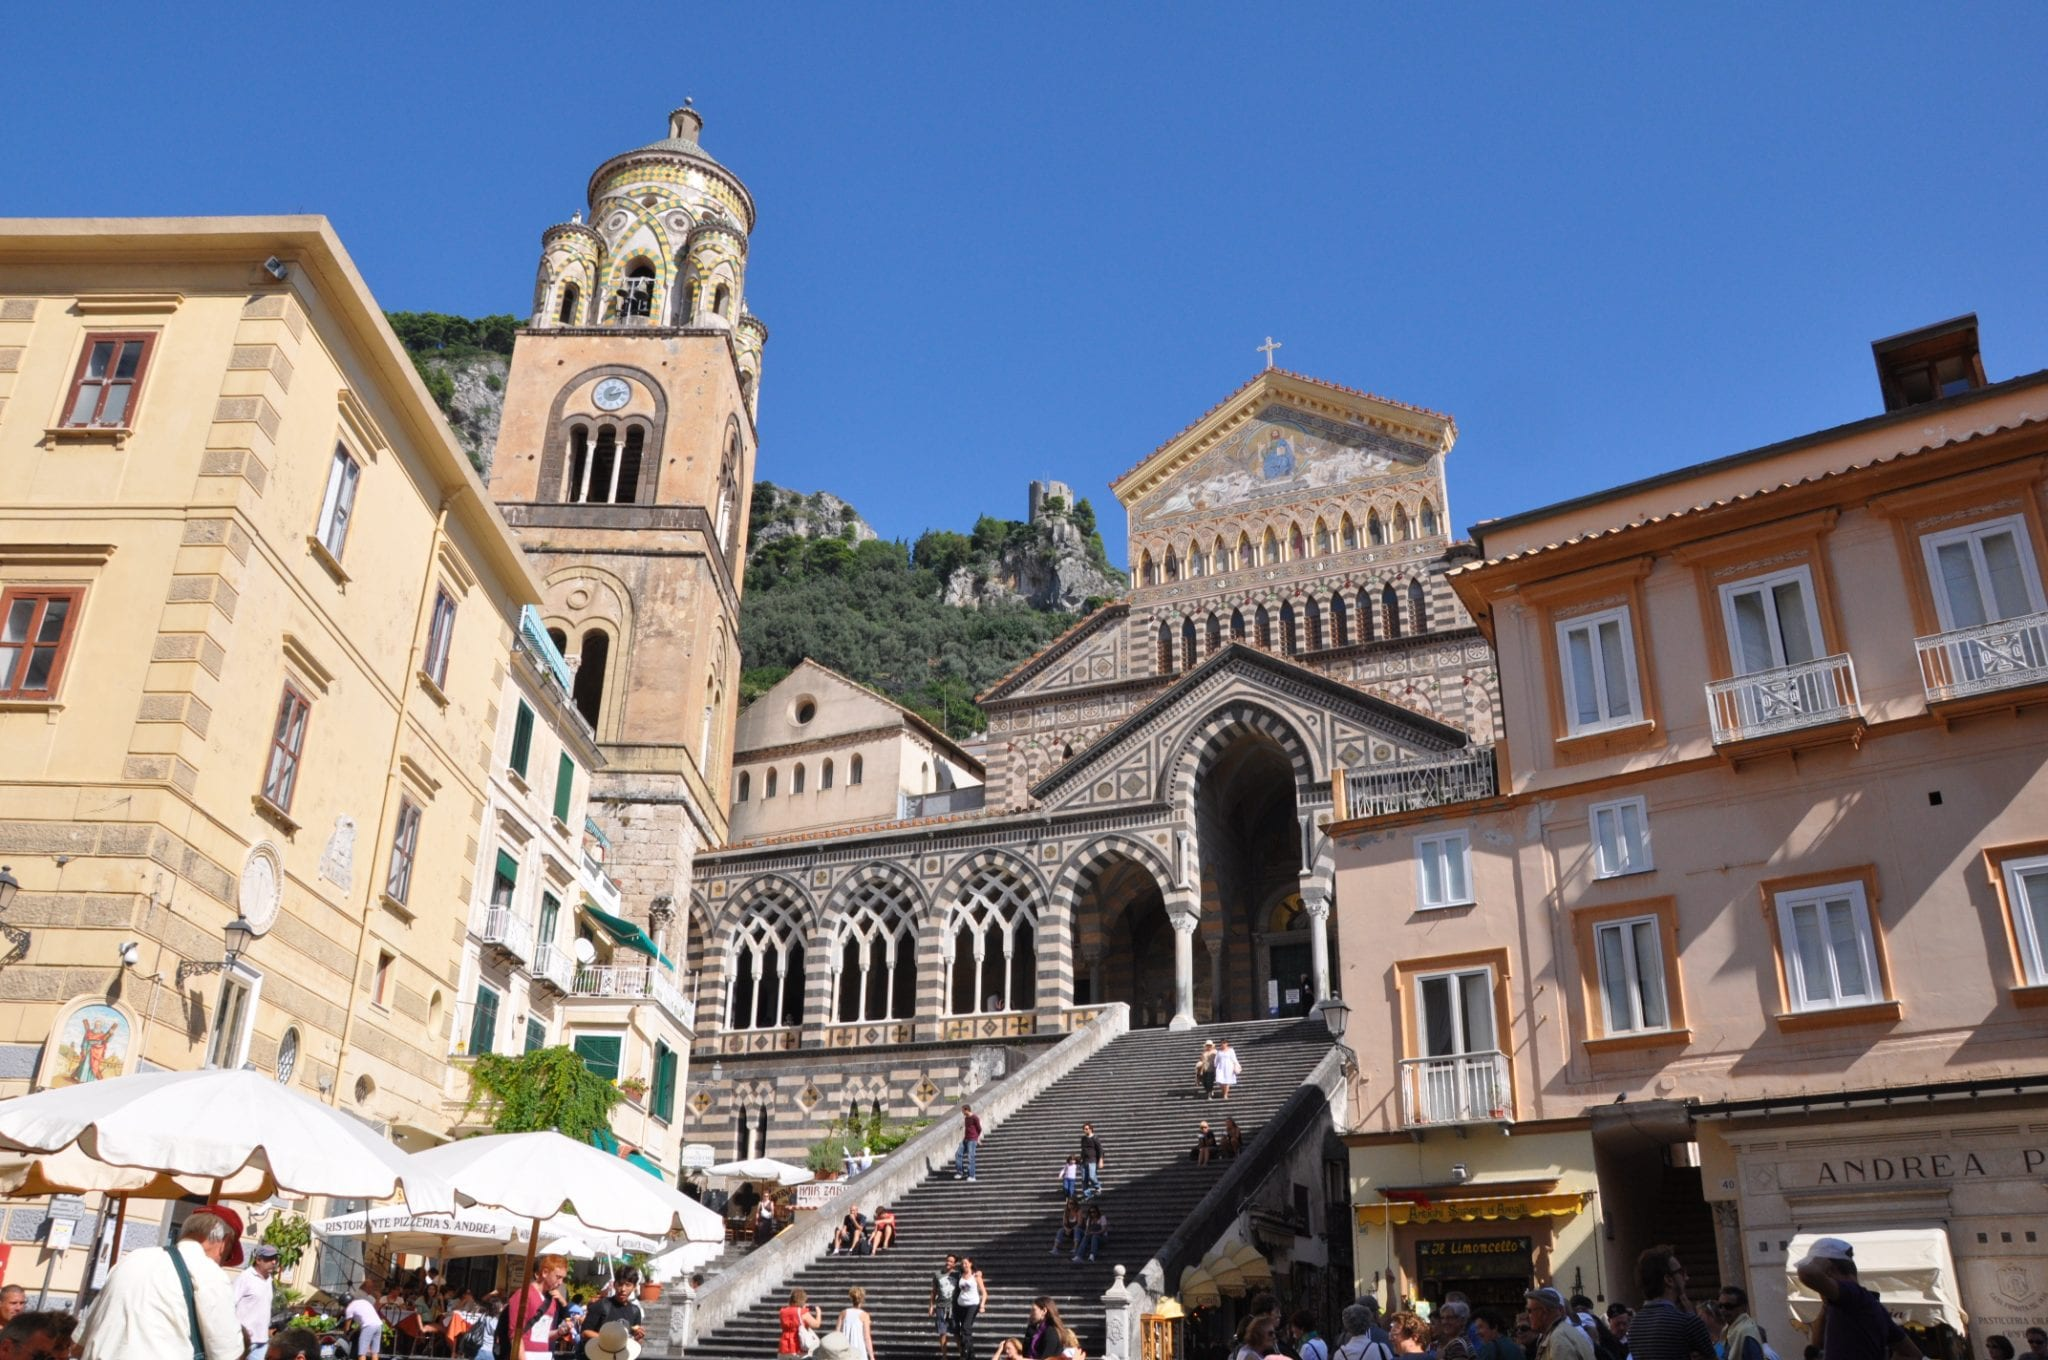 St. Andrew's Cathedral in Amalfi town